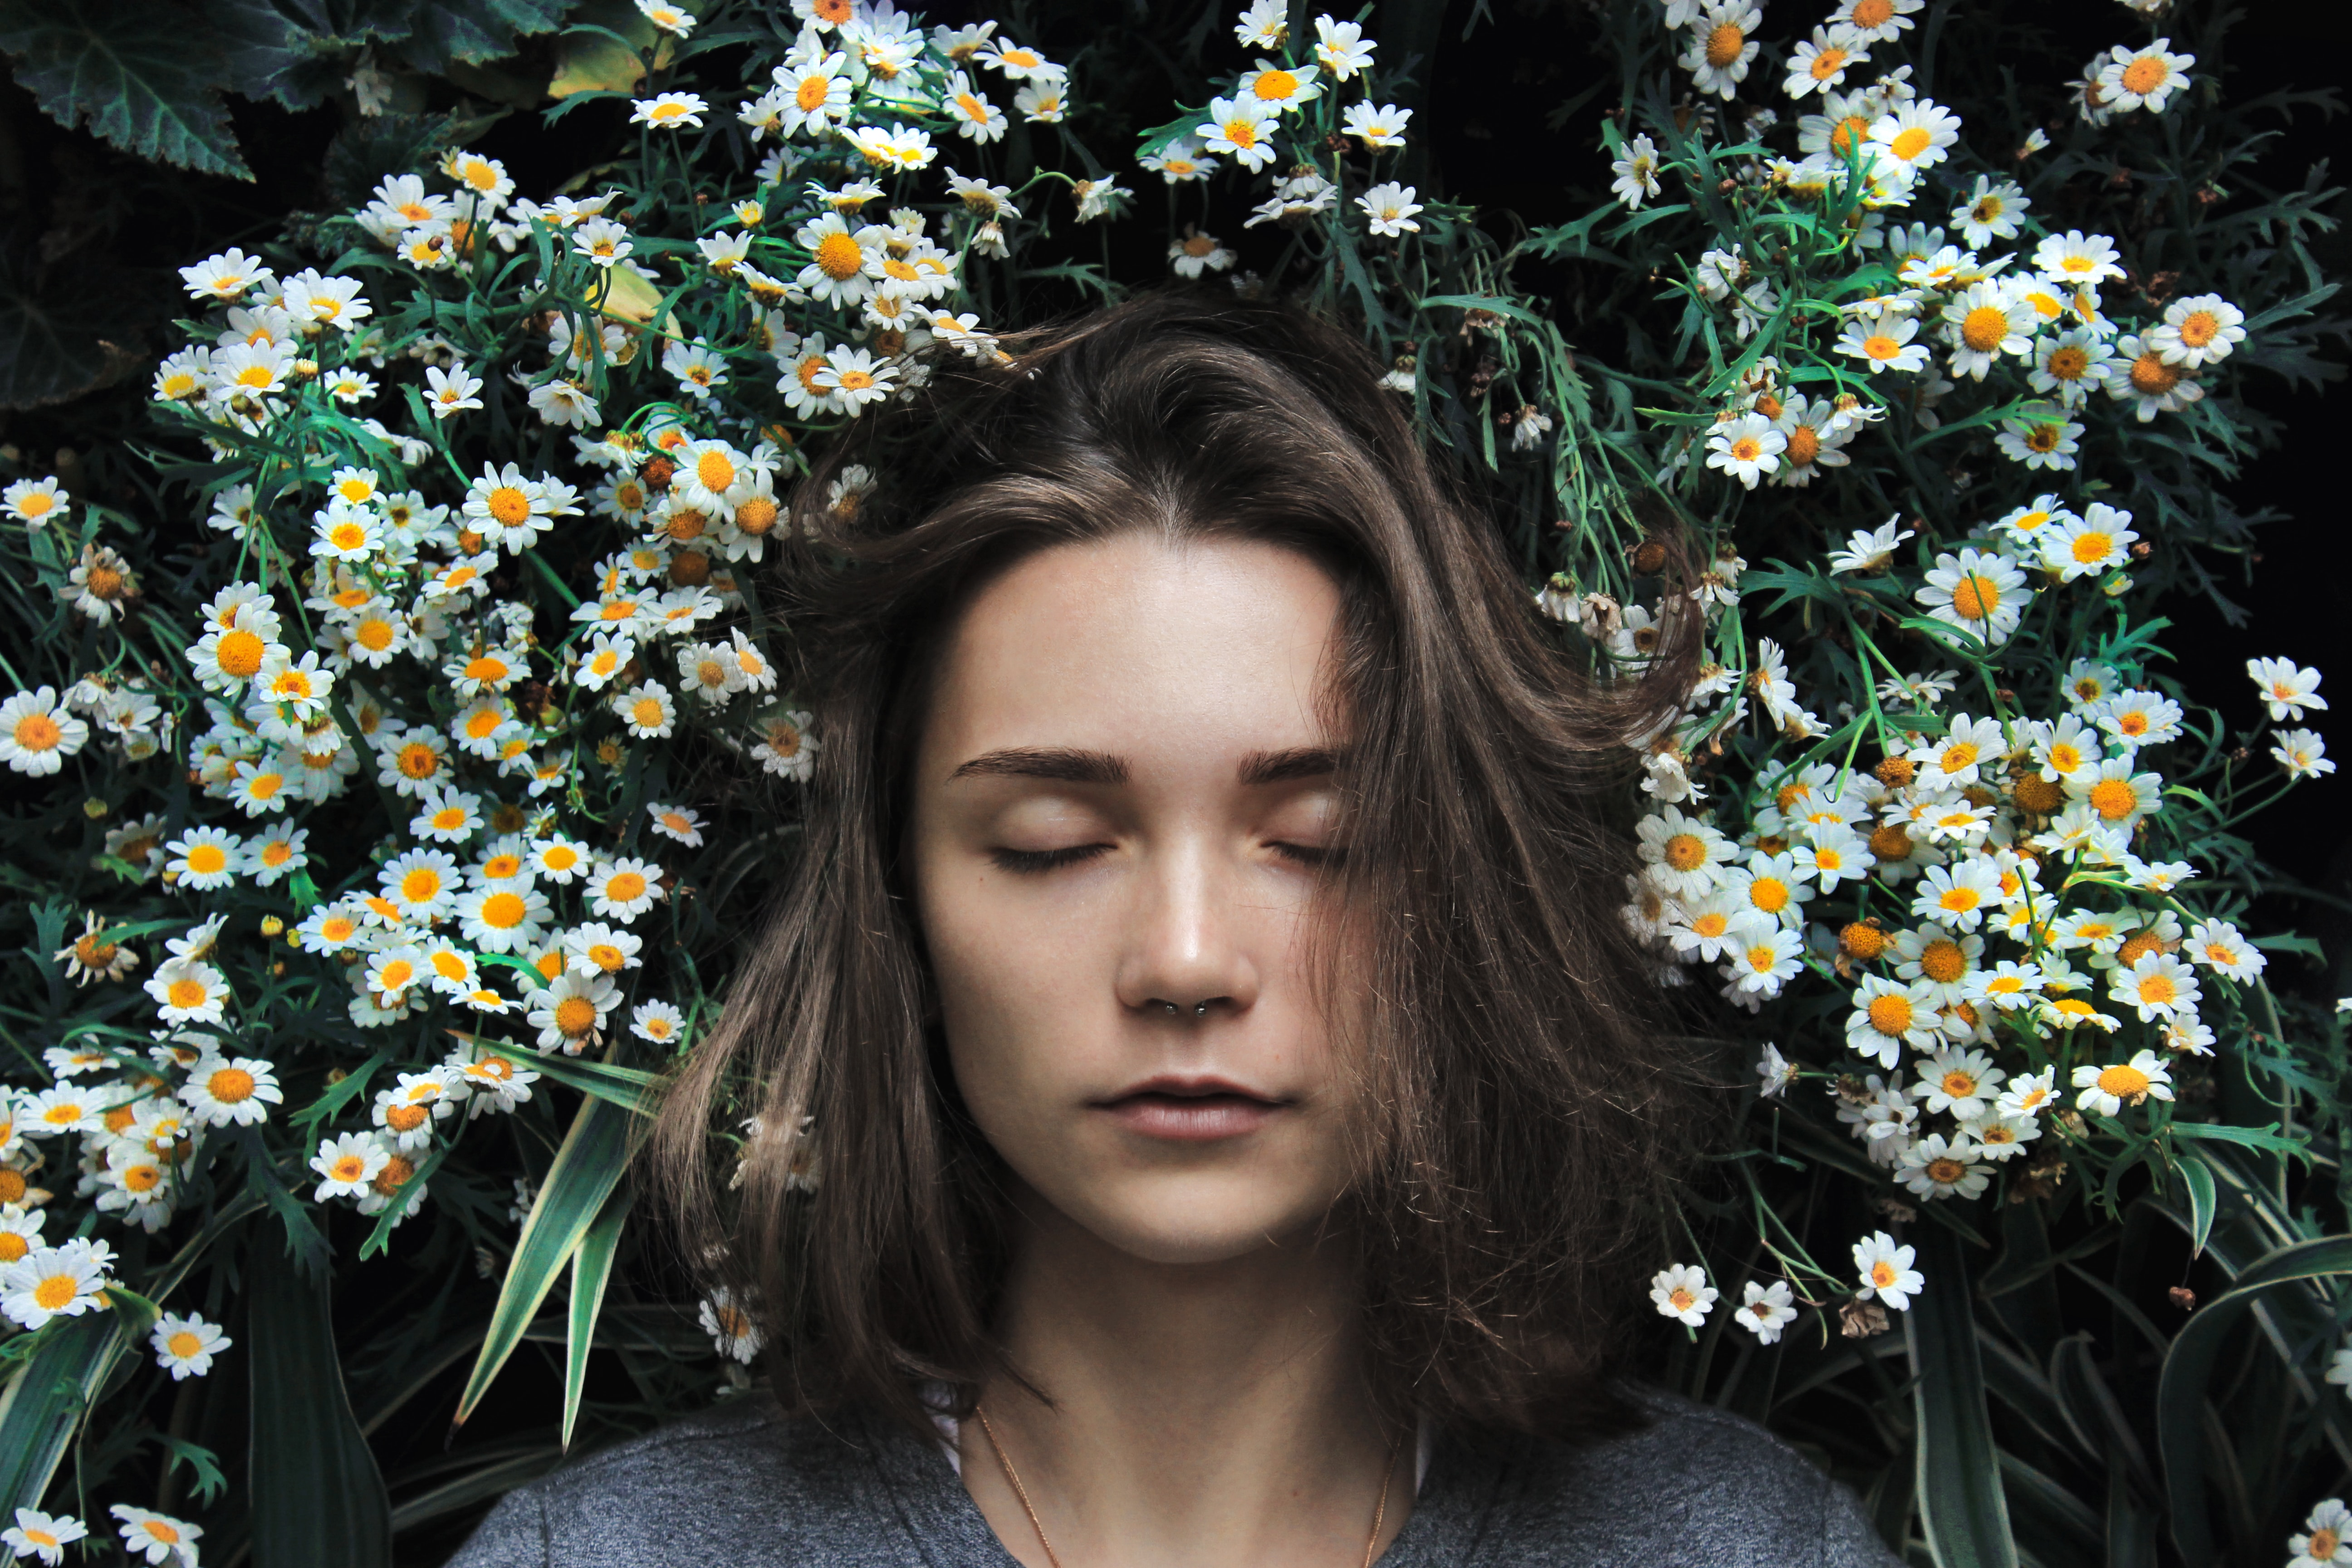 woman dreaming in a field of daisies